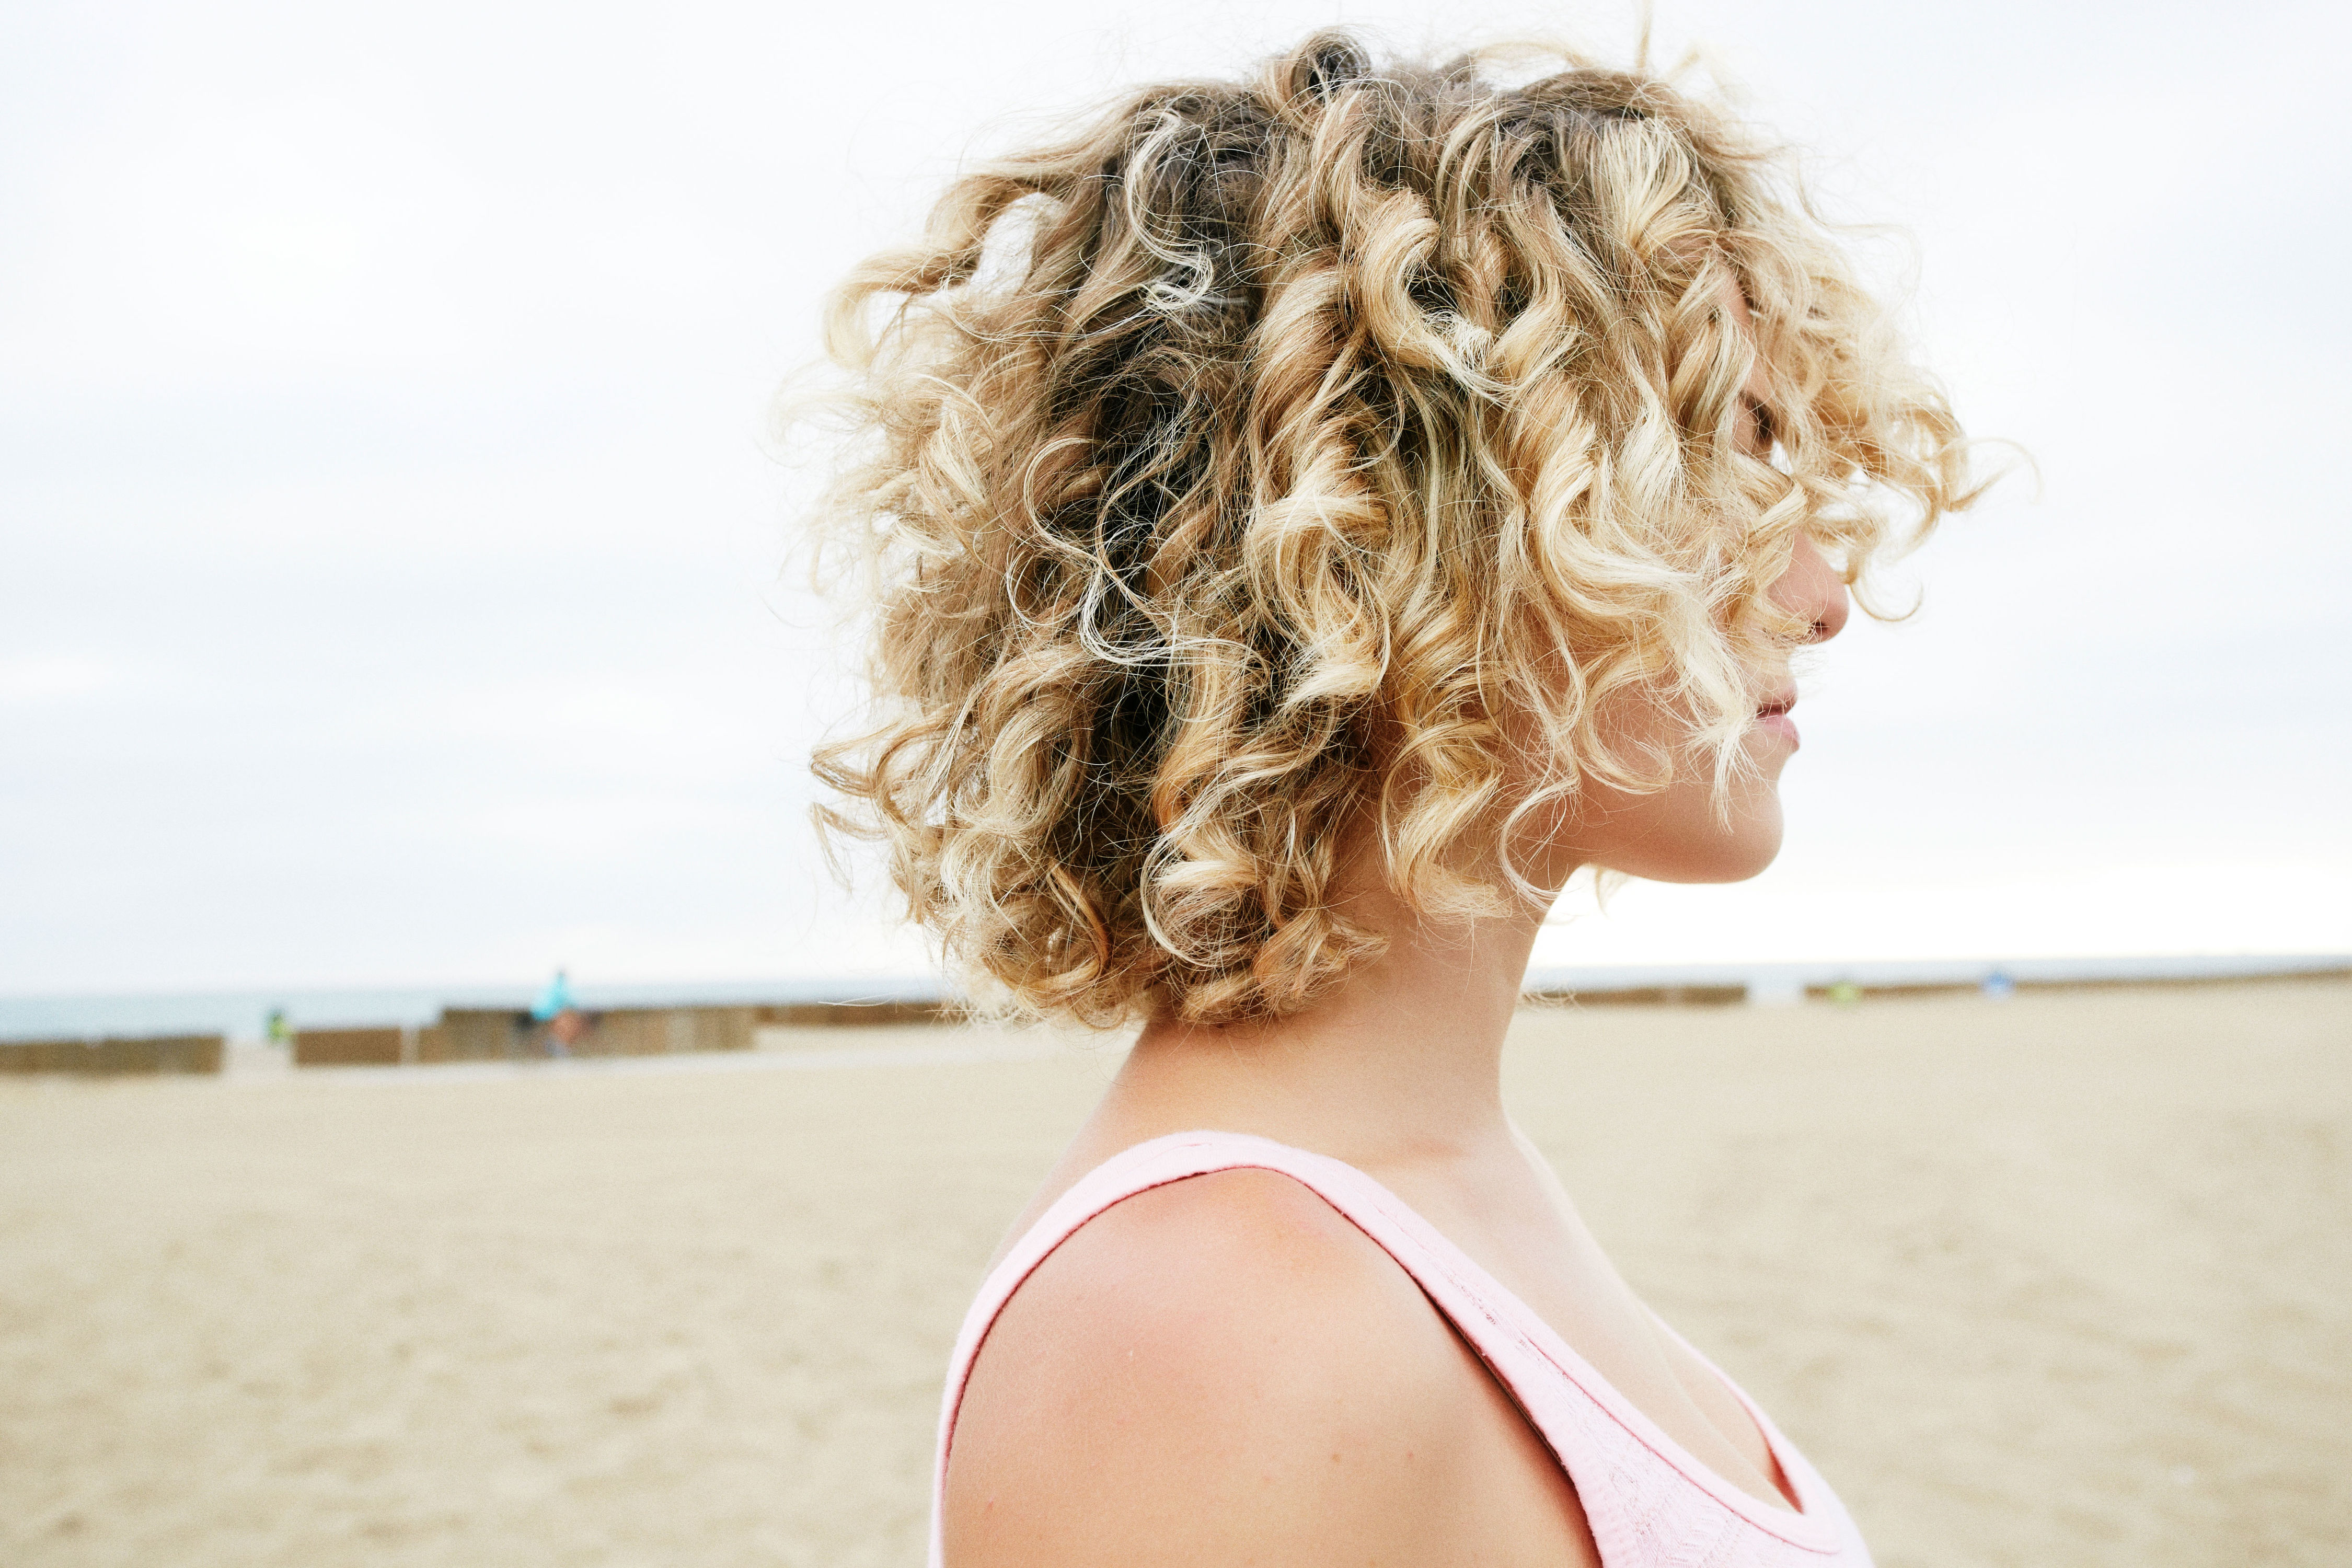 Hair Care Rules Every Blonde Should Follow